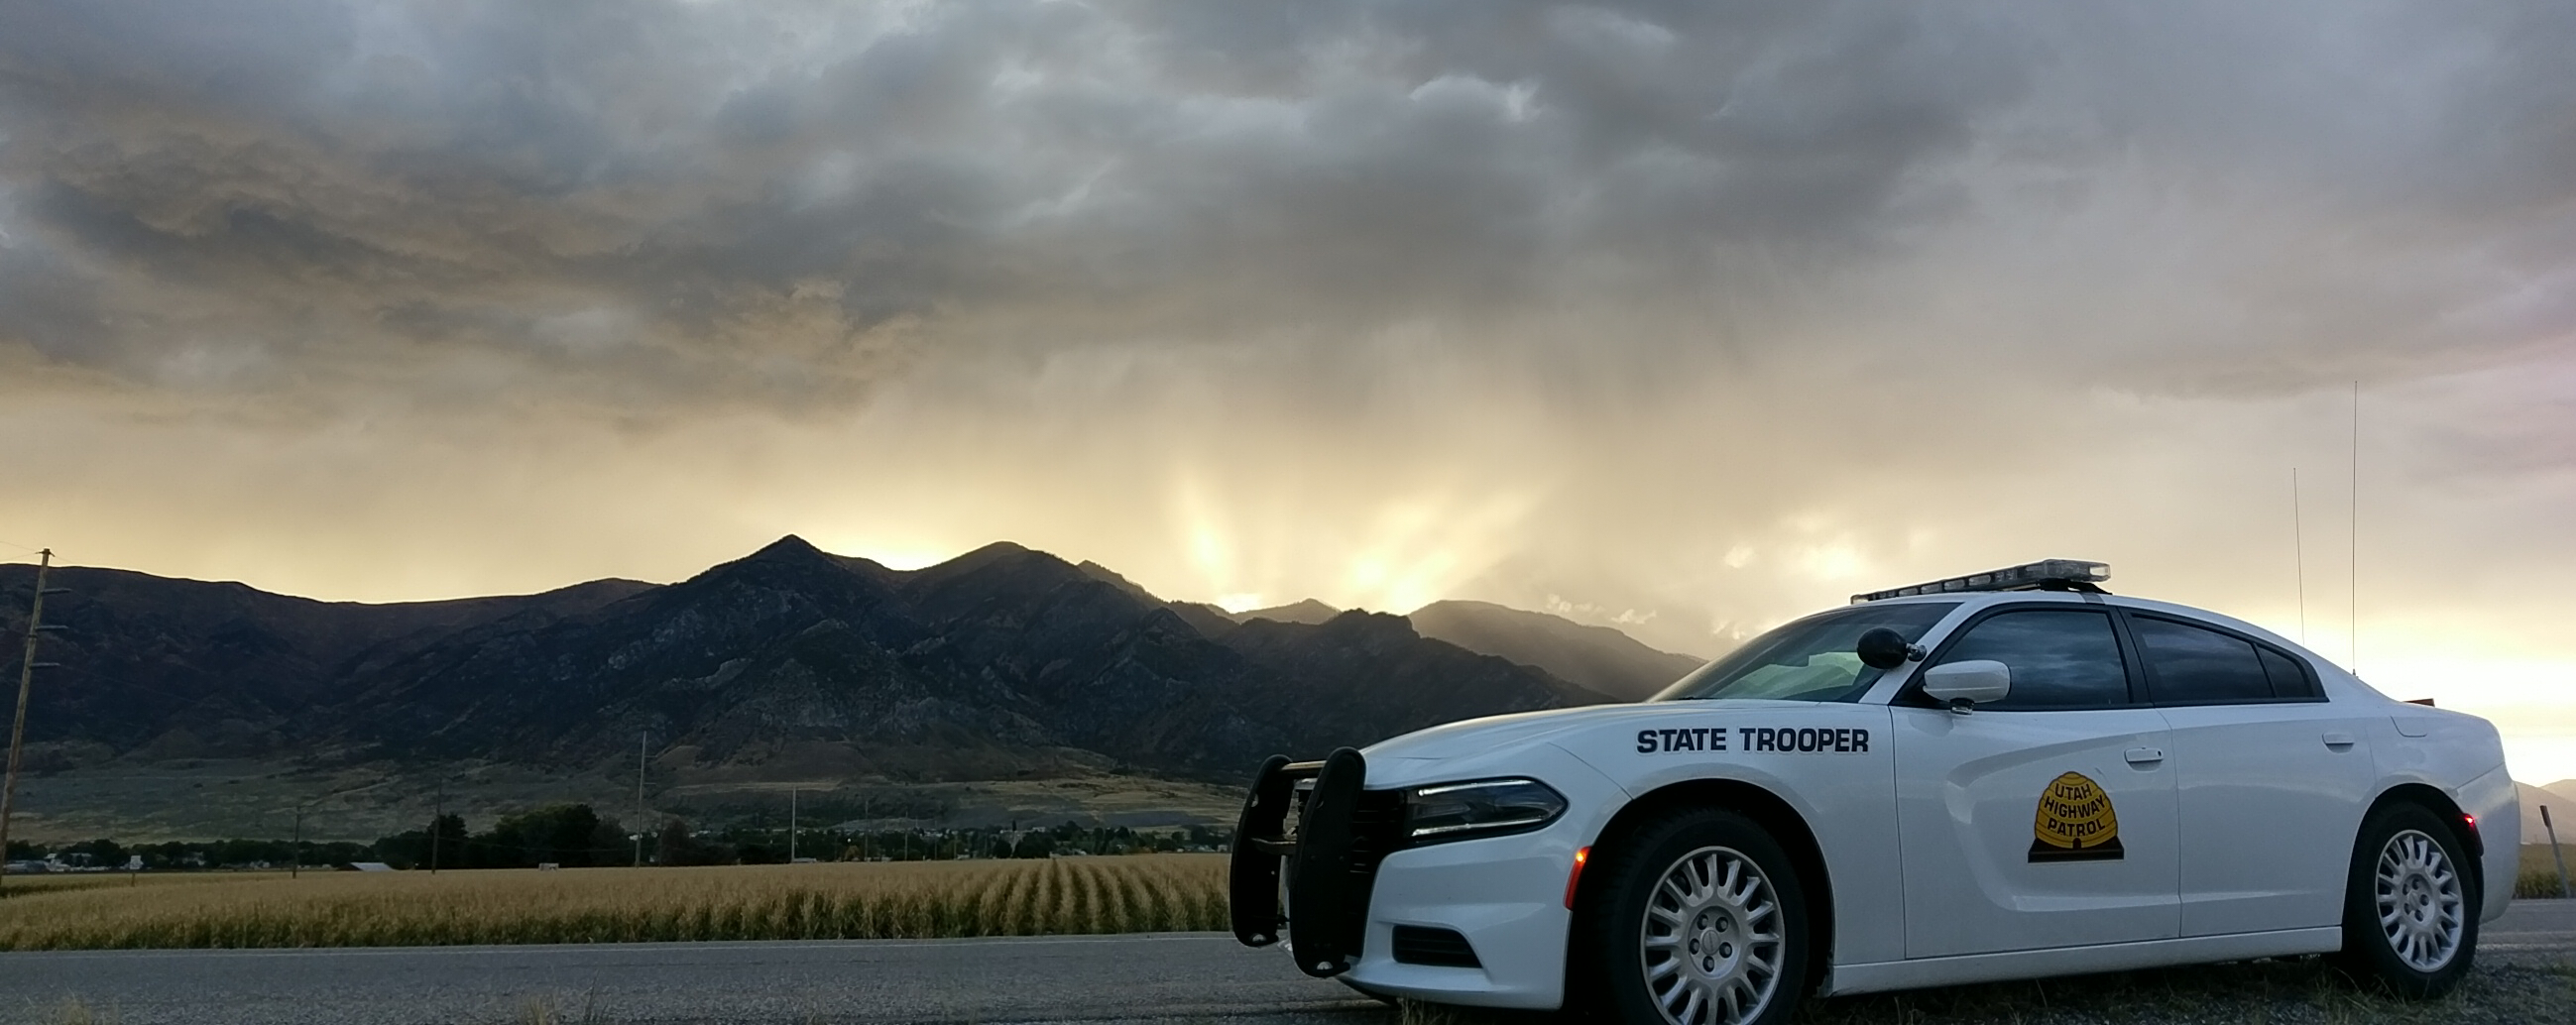 A UHP Charger is juxtaposed with sunset behind the mountains in section 1.